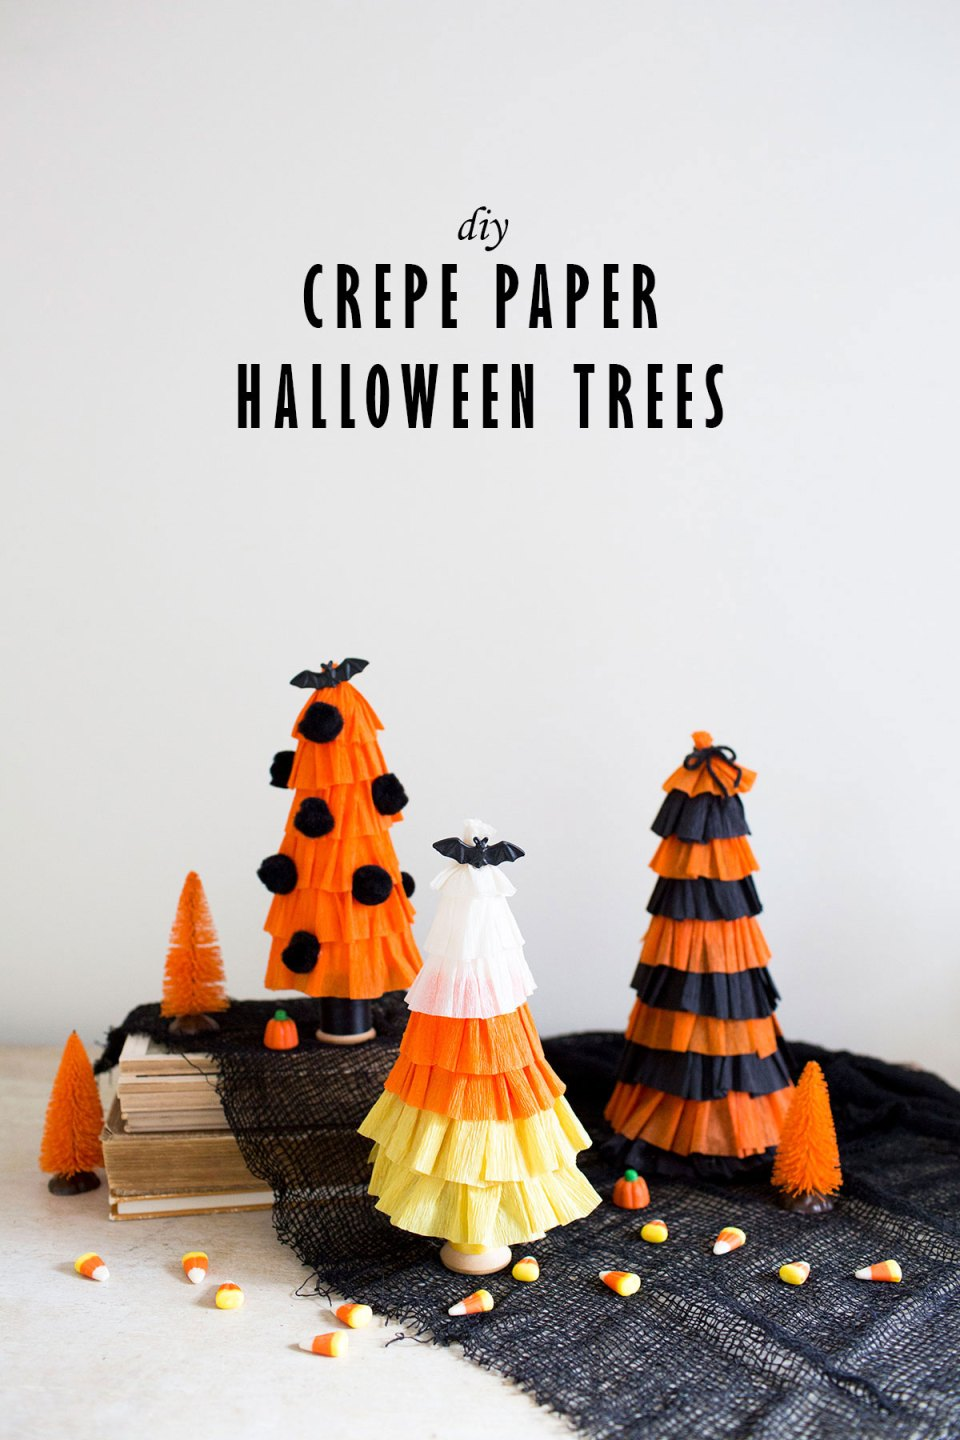 DIY Crepe Paper Halloween Trees